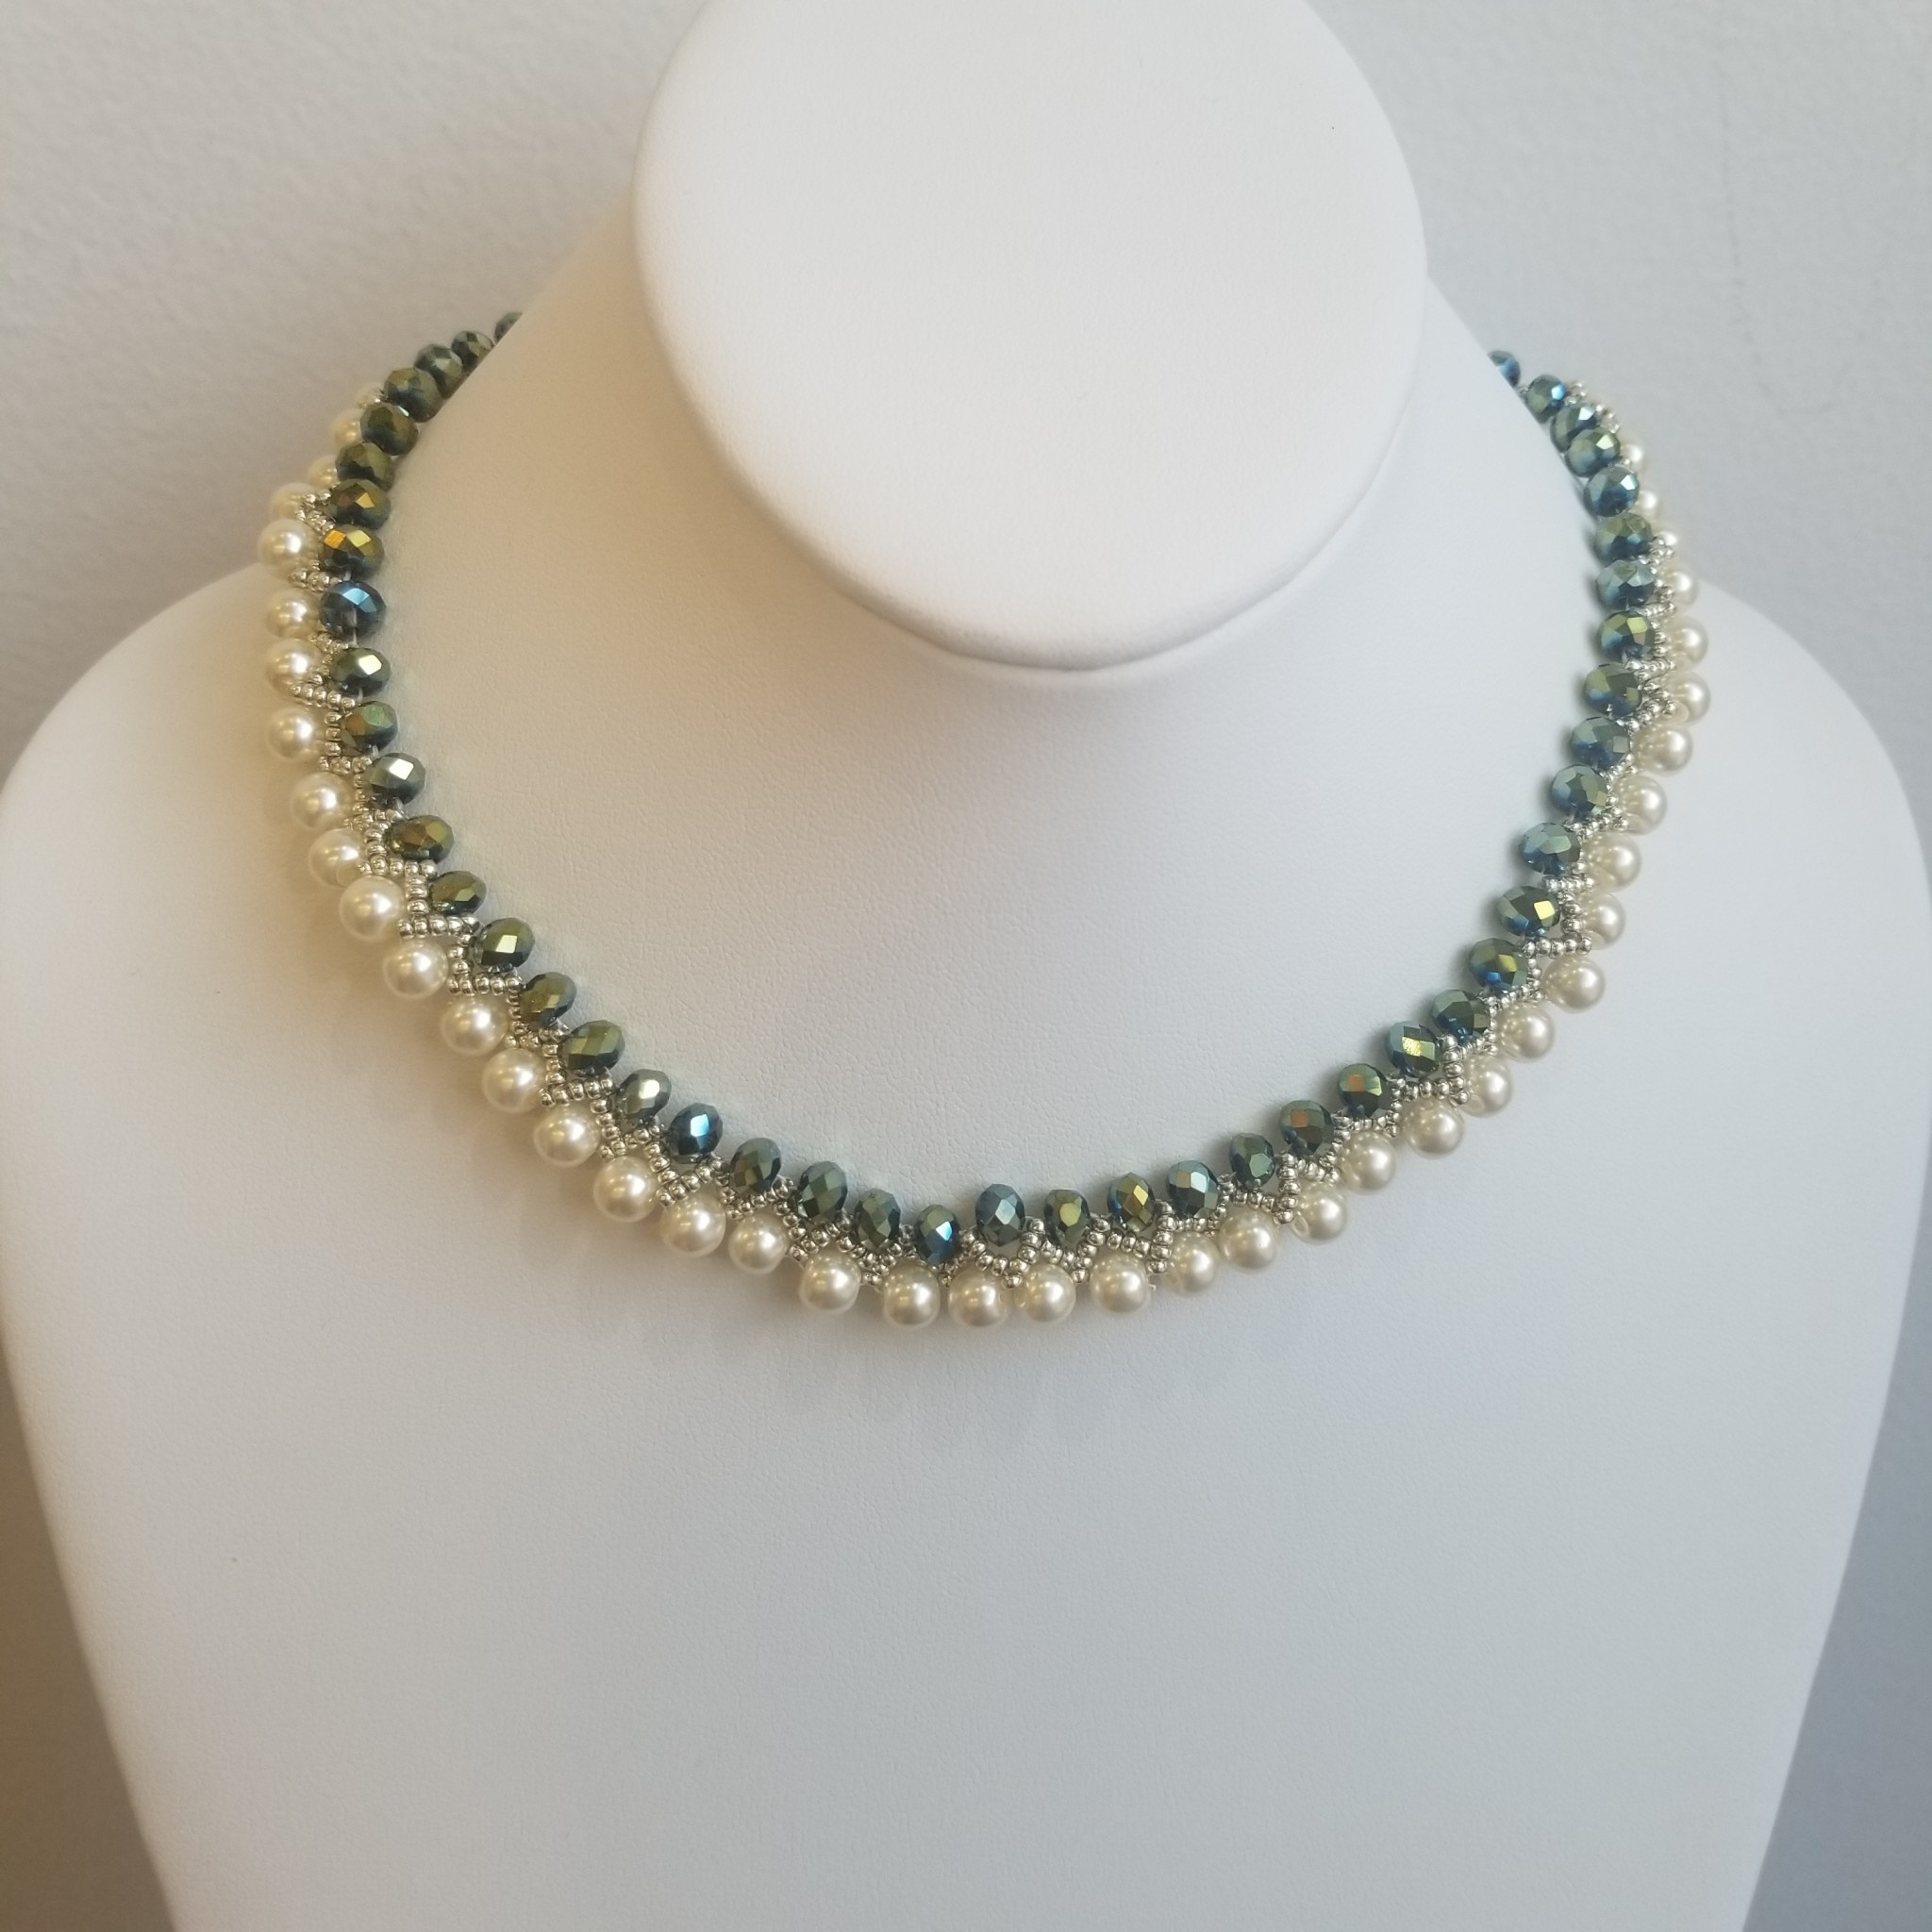 Esmeralda Lambert Handwoven Pearl and Crystals Necklace Silver - Green and White